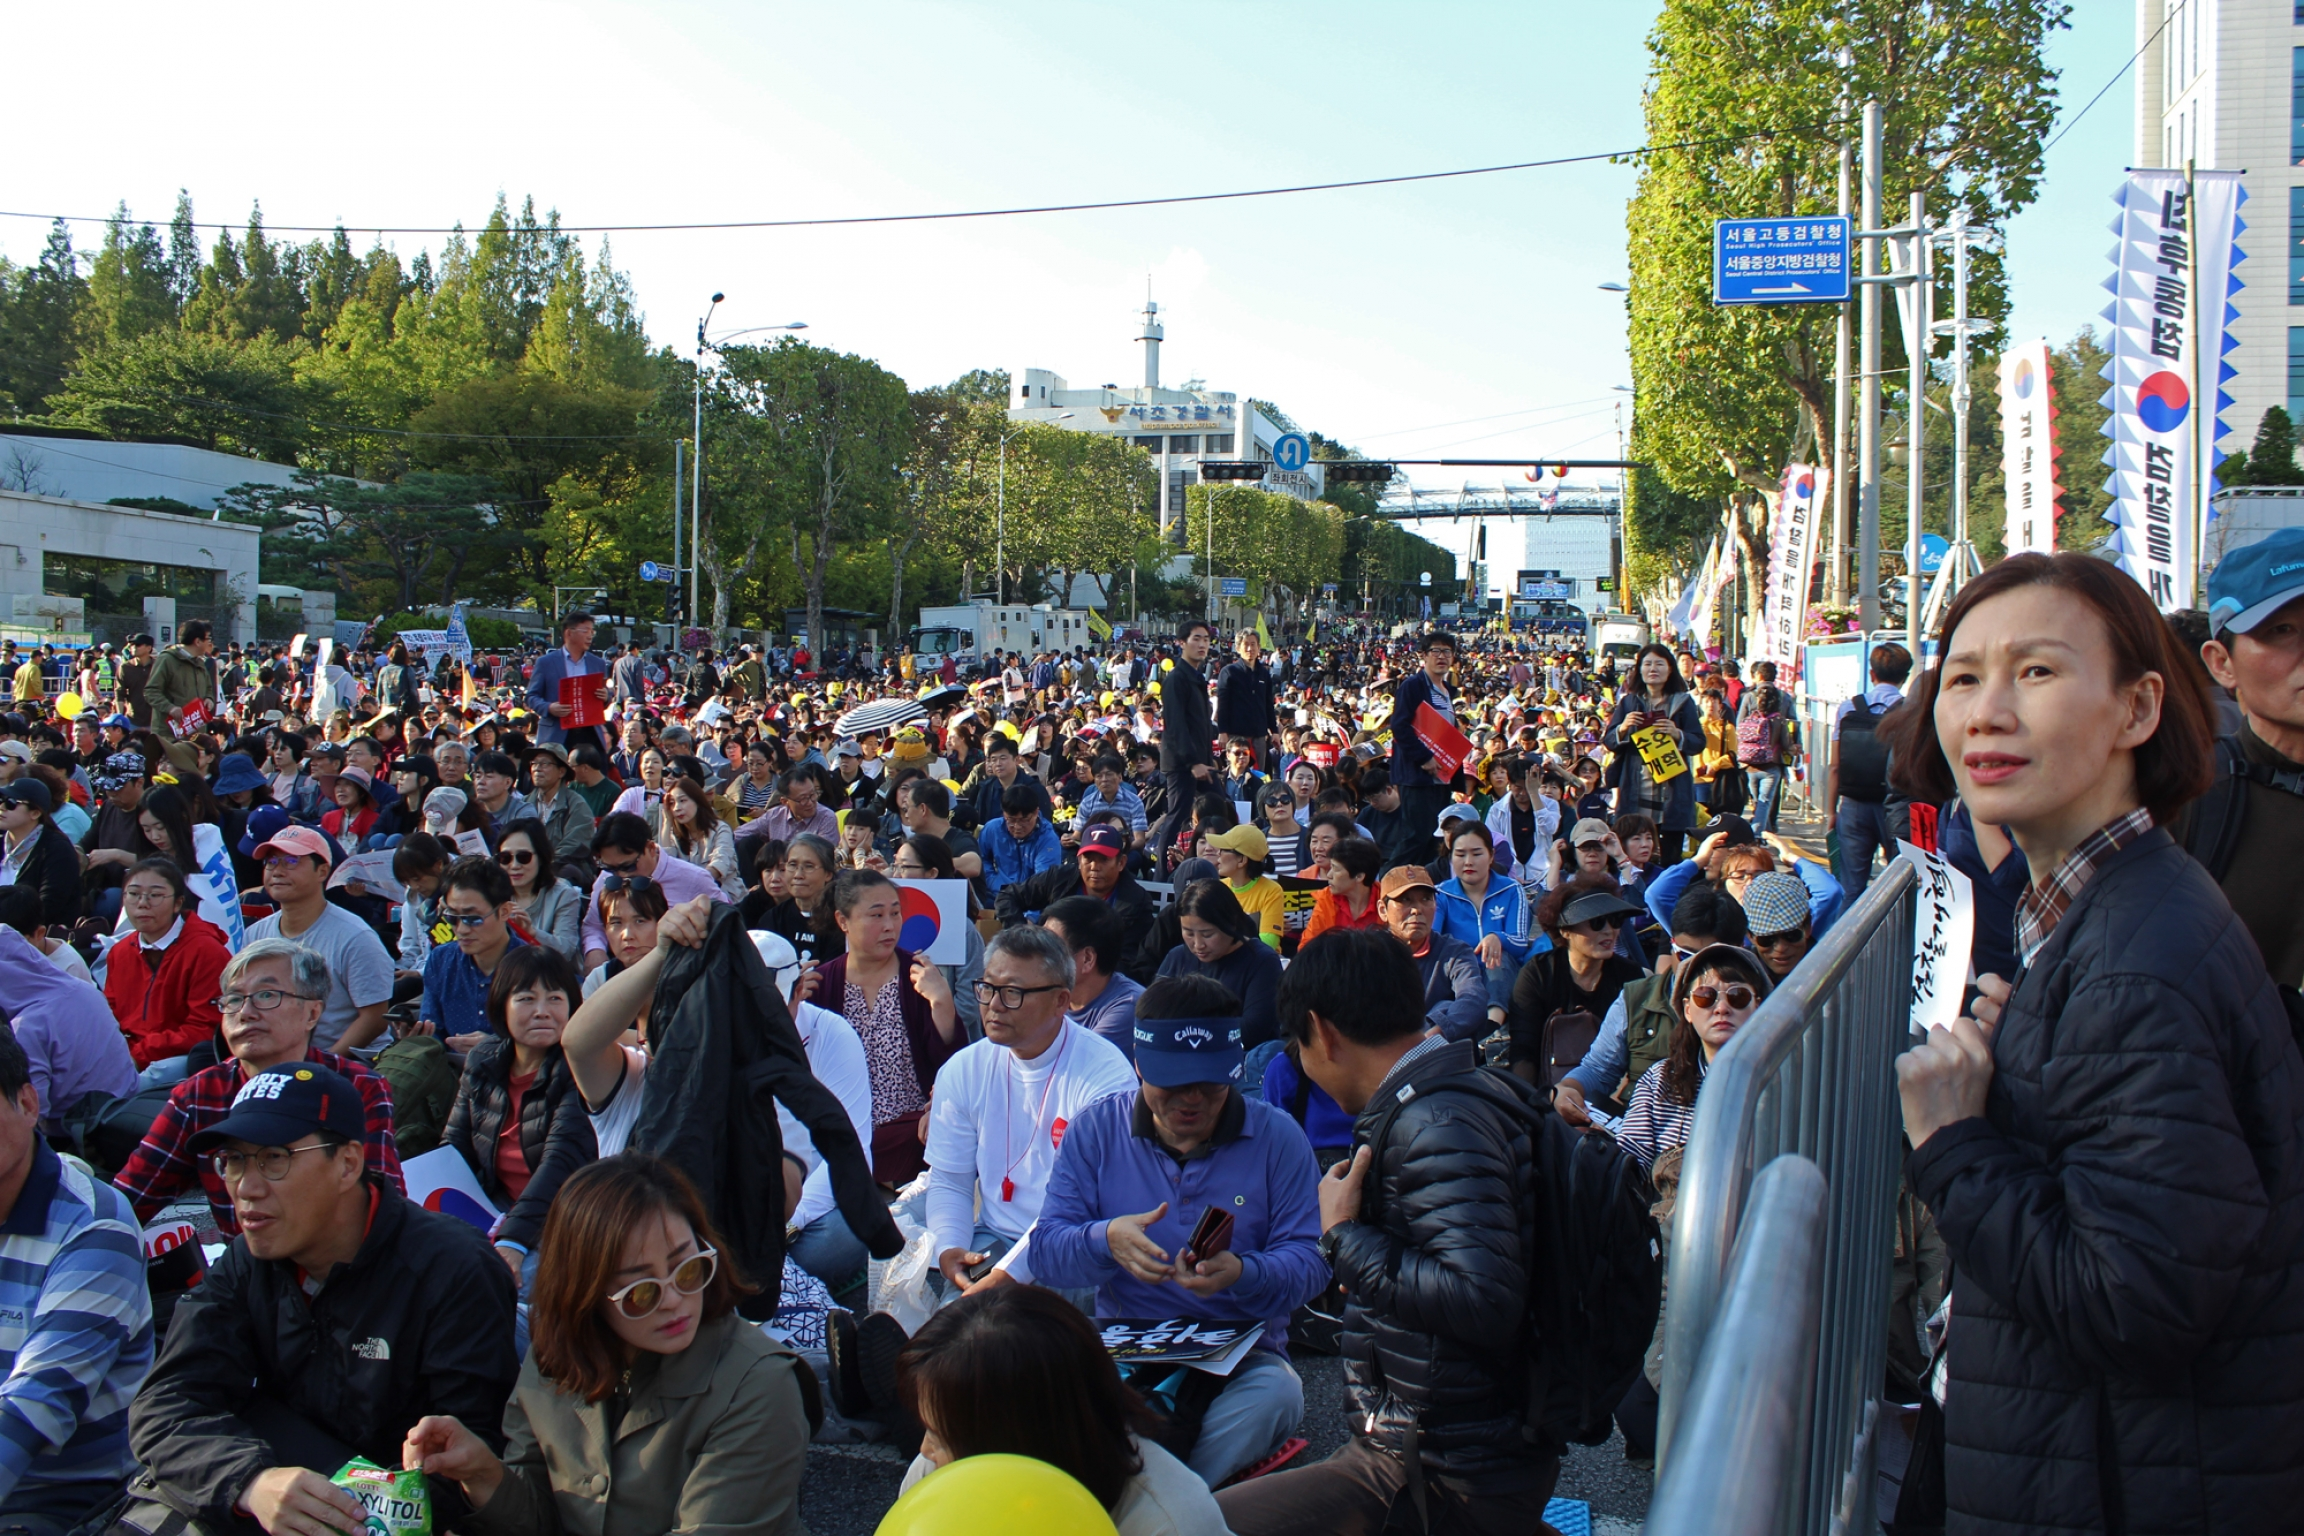 Mass protest in South Korea